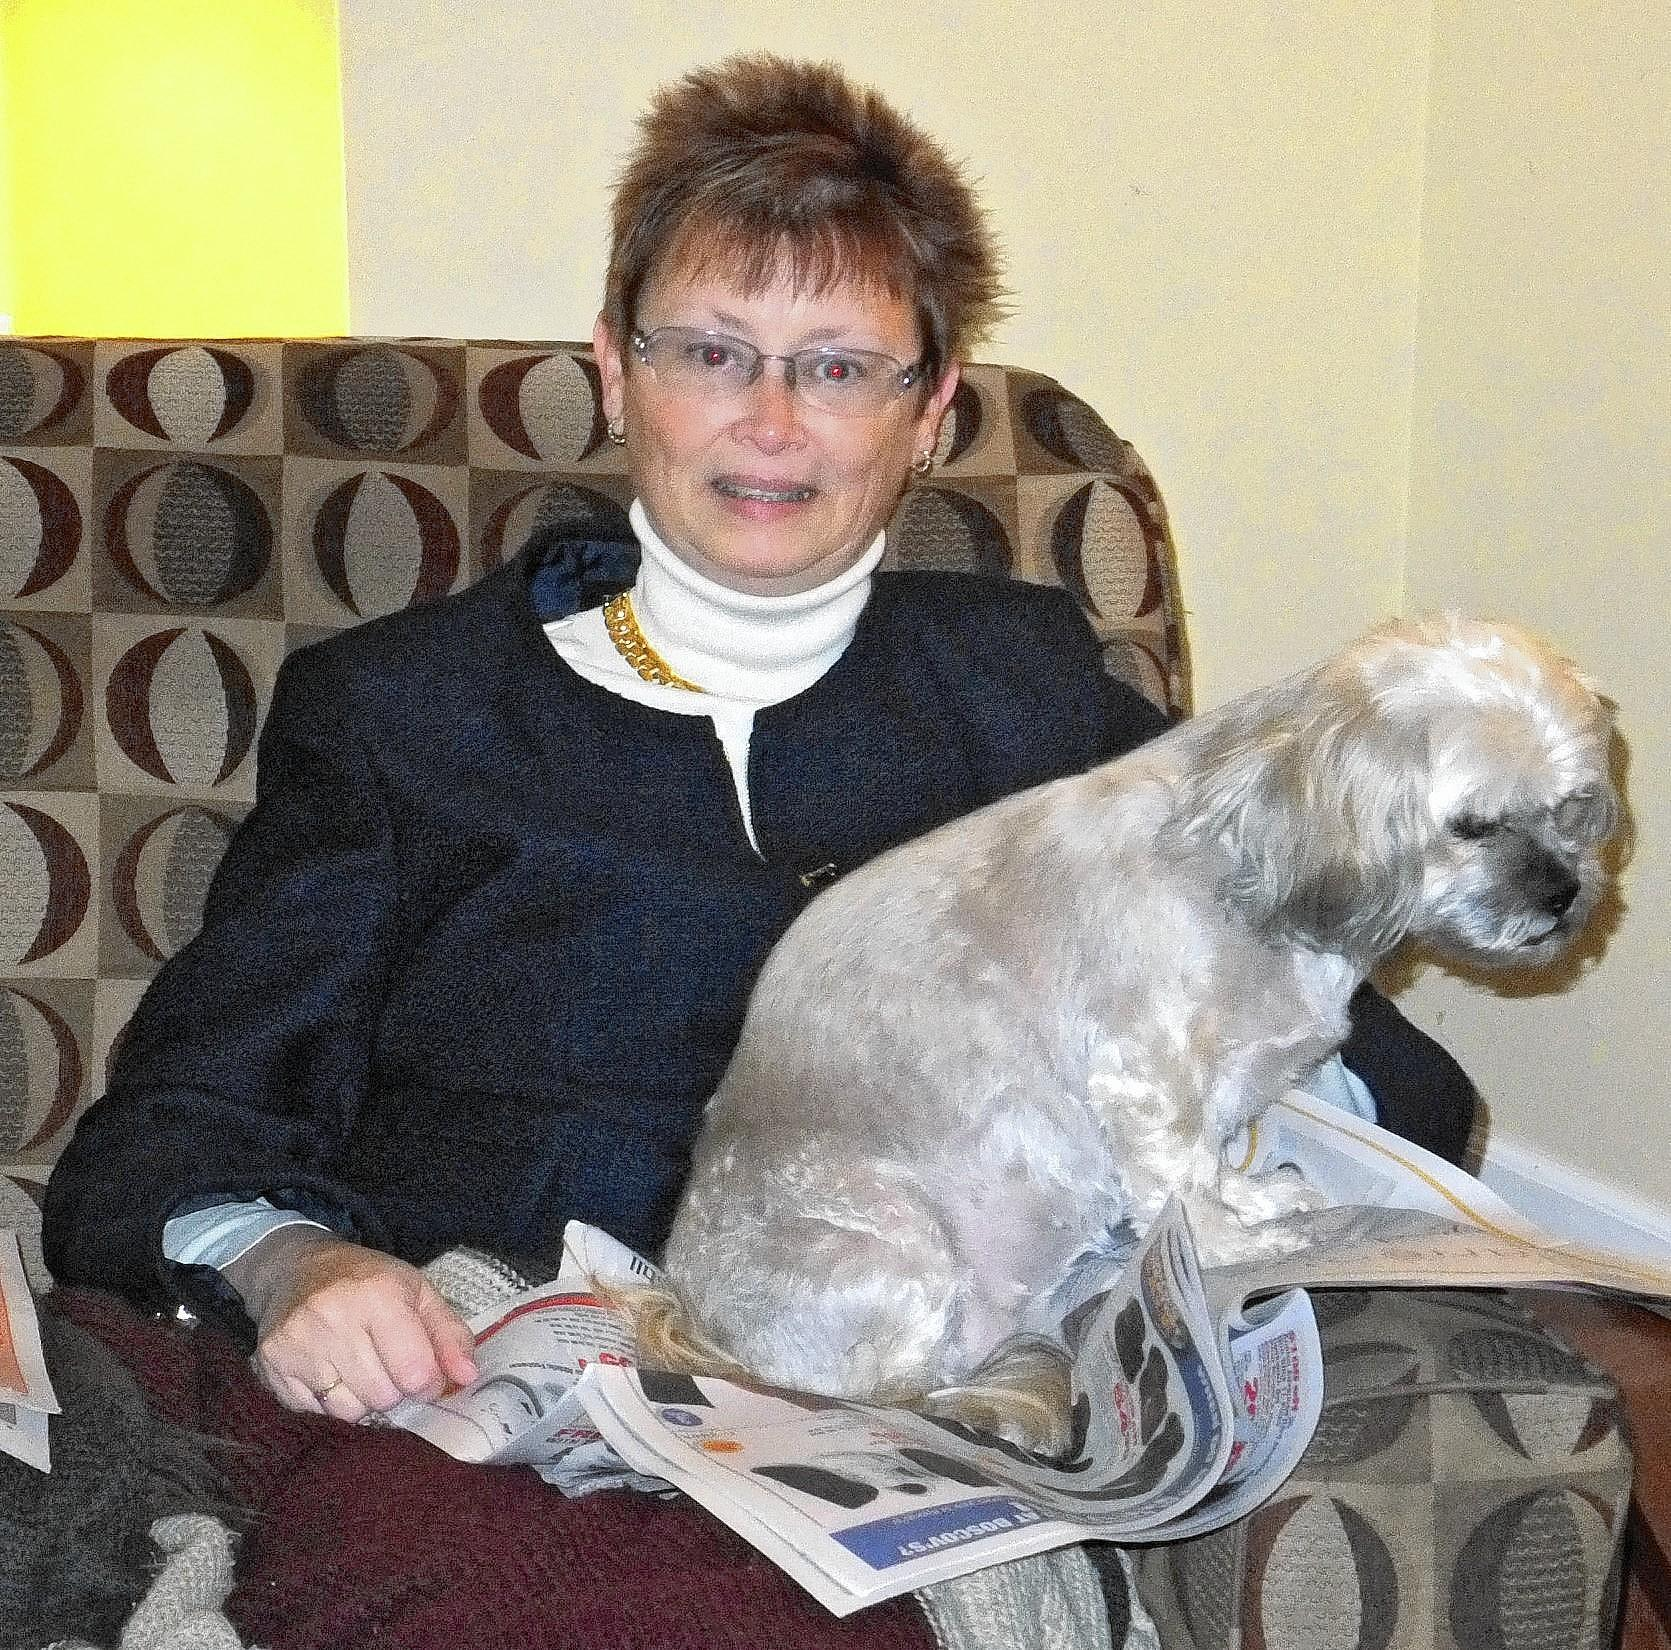 Muffin, an 8-year-old Lhasa apso, is owned and loved by Lauren Giguere, 56, of Schnecksville.